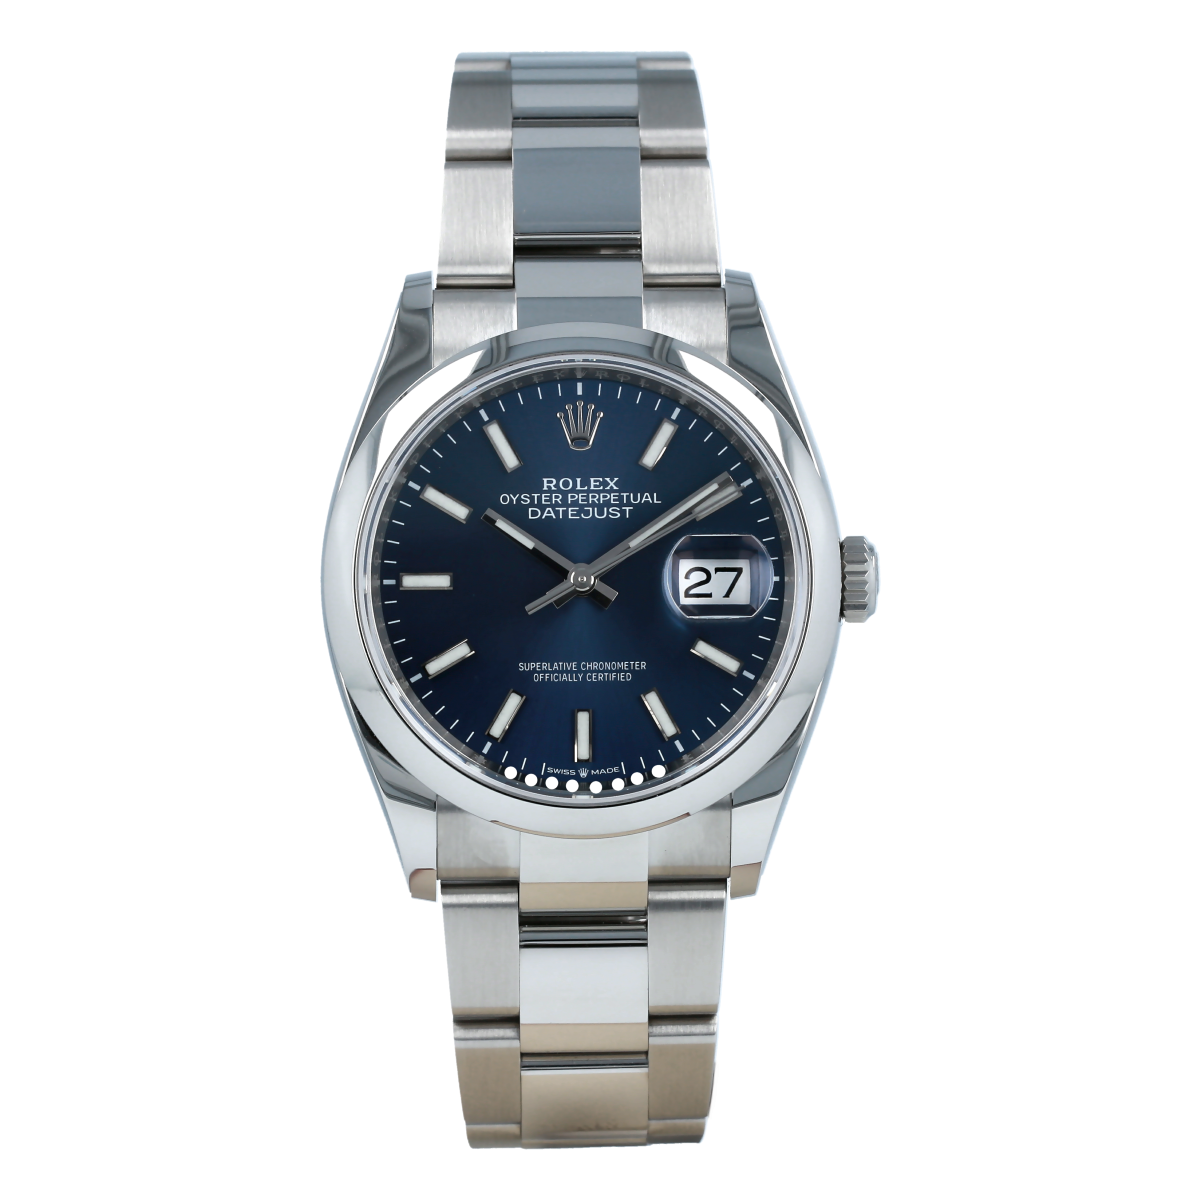 Rolex Datejust 36mm 126200 Blue Dial *Brand-New* | Buy pre-owned Rolex watch